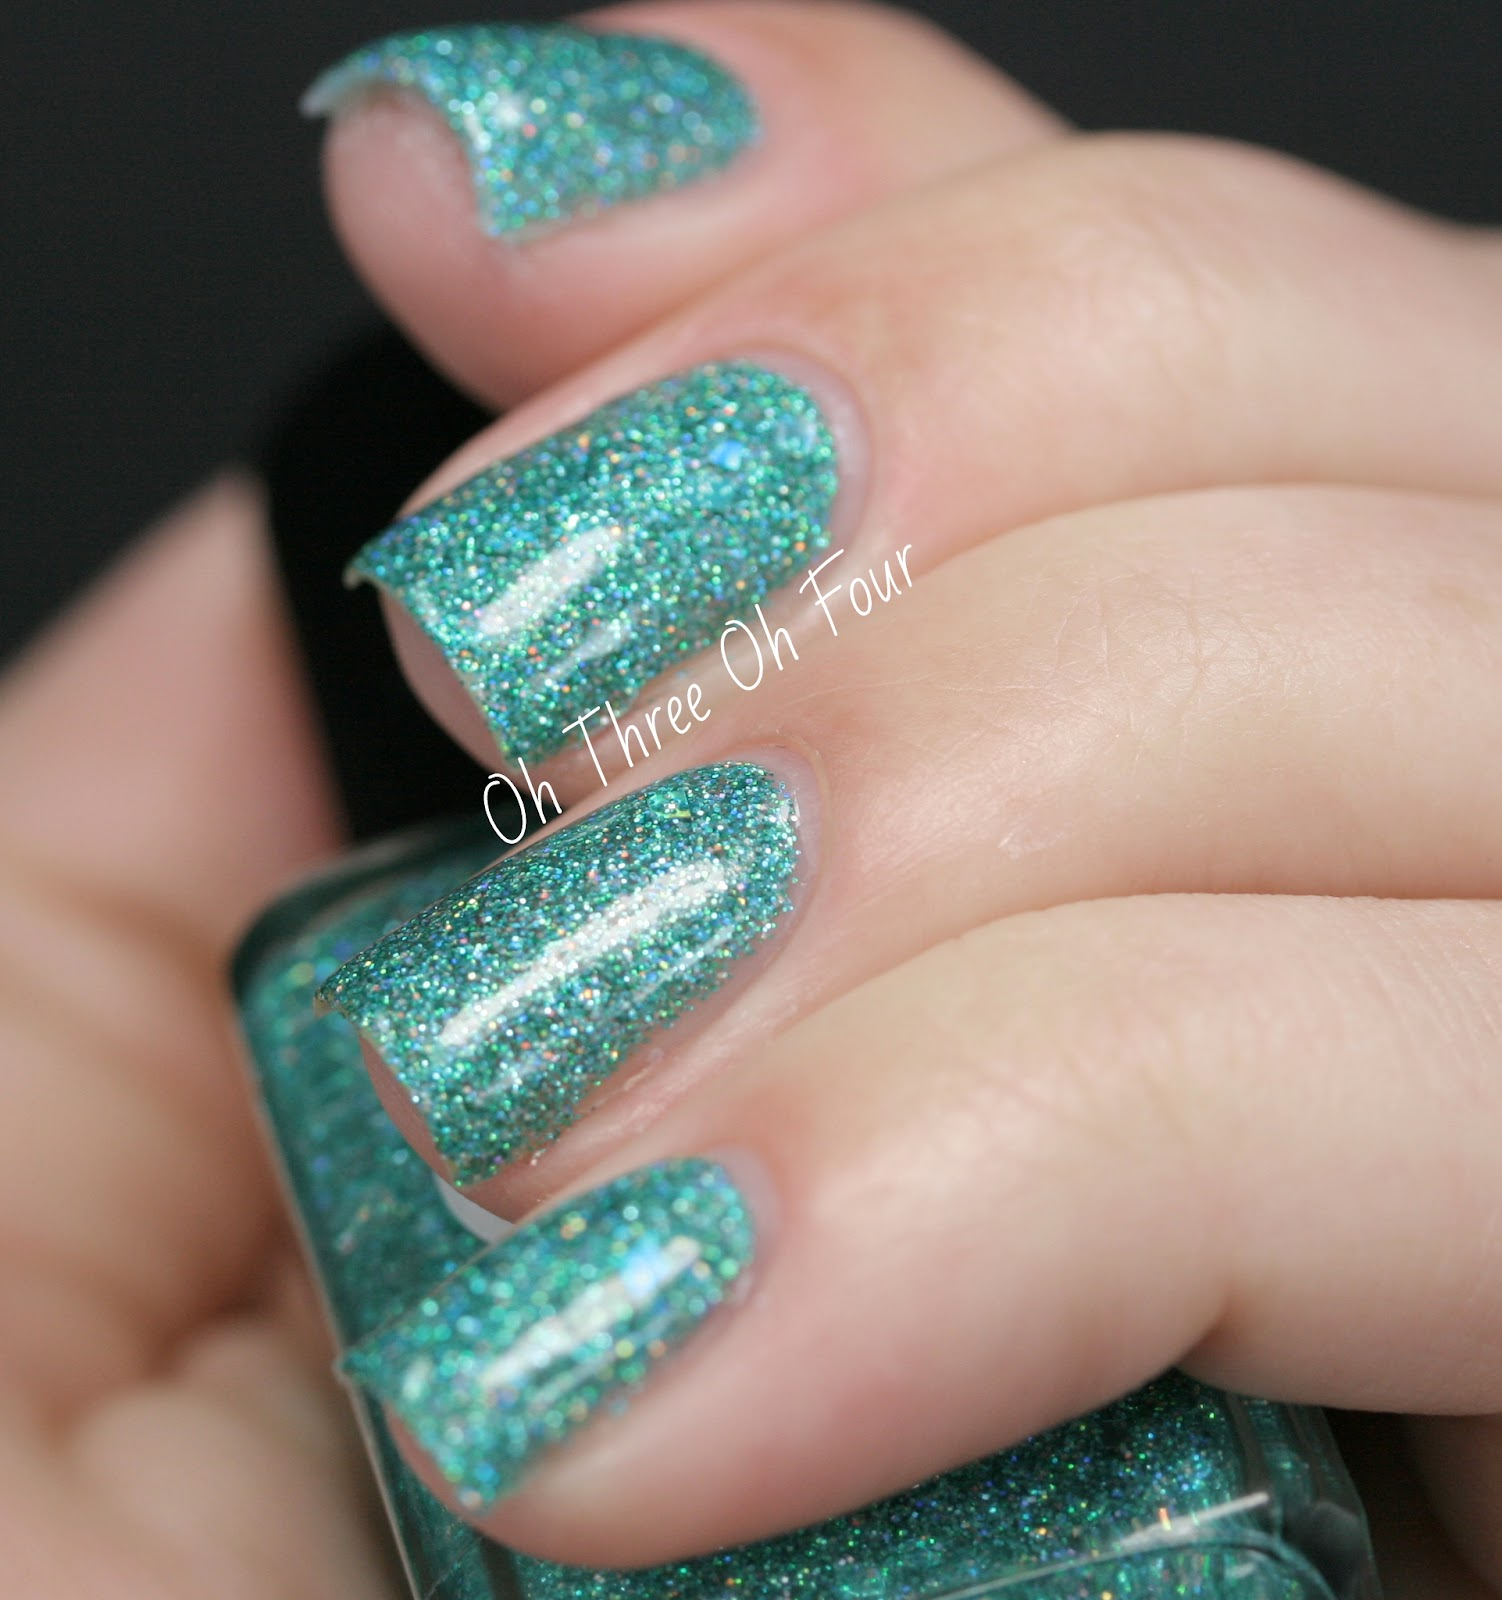 Lynnderella Do You Paraiba? Swatch